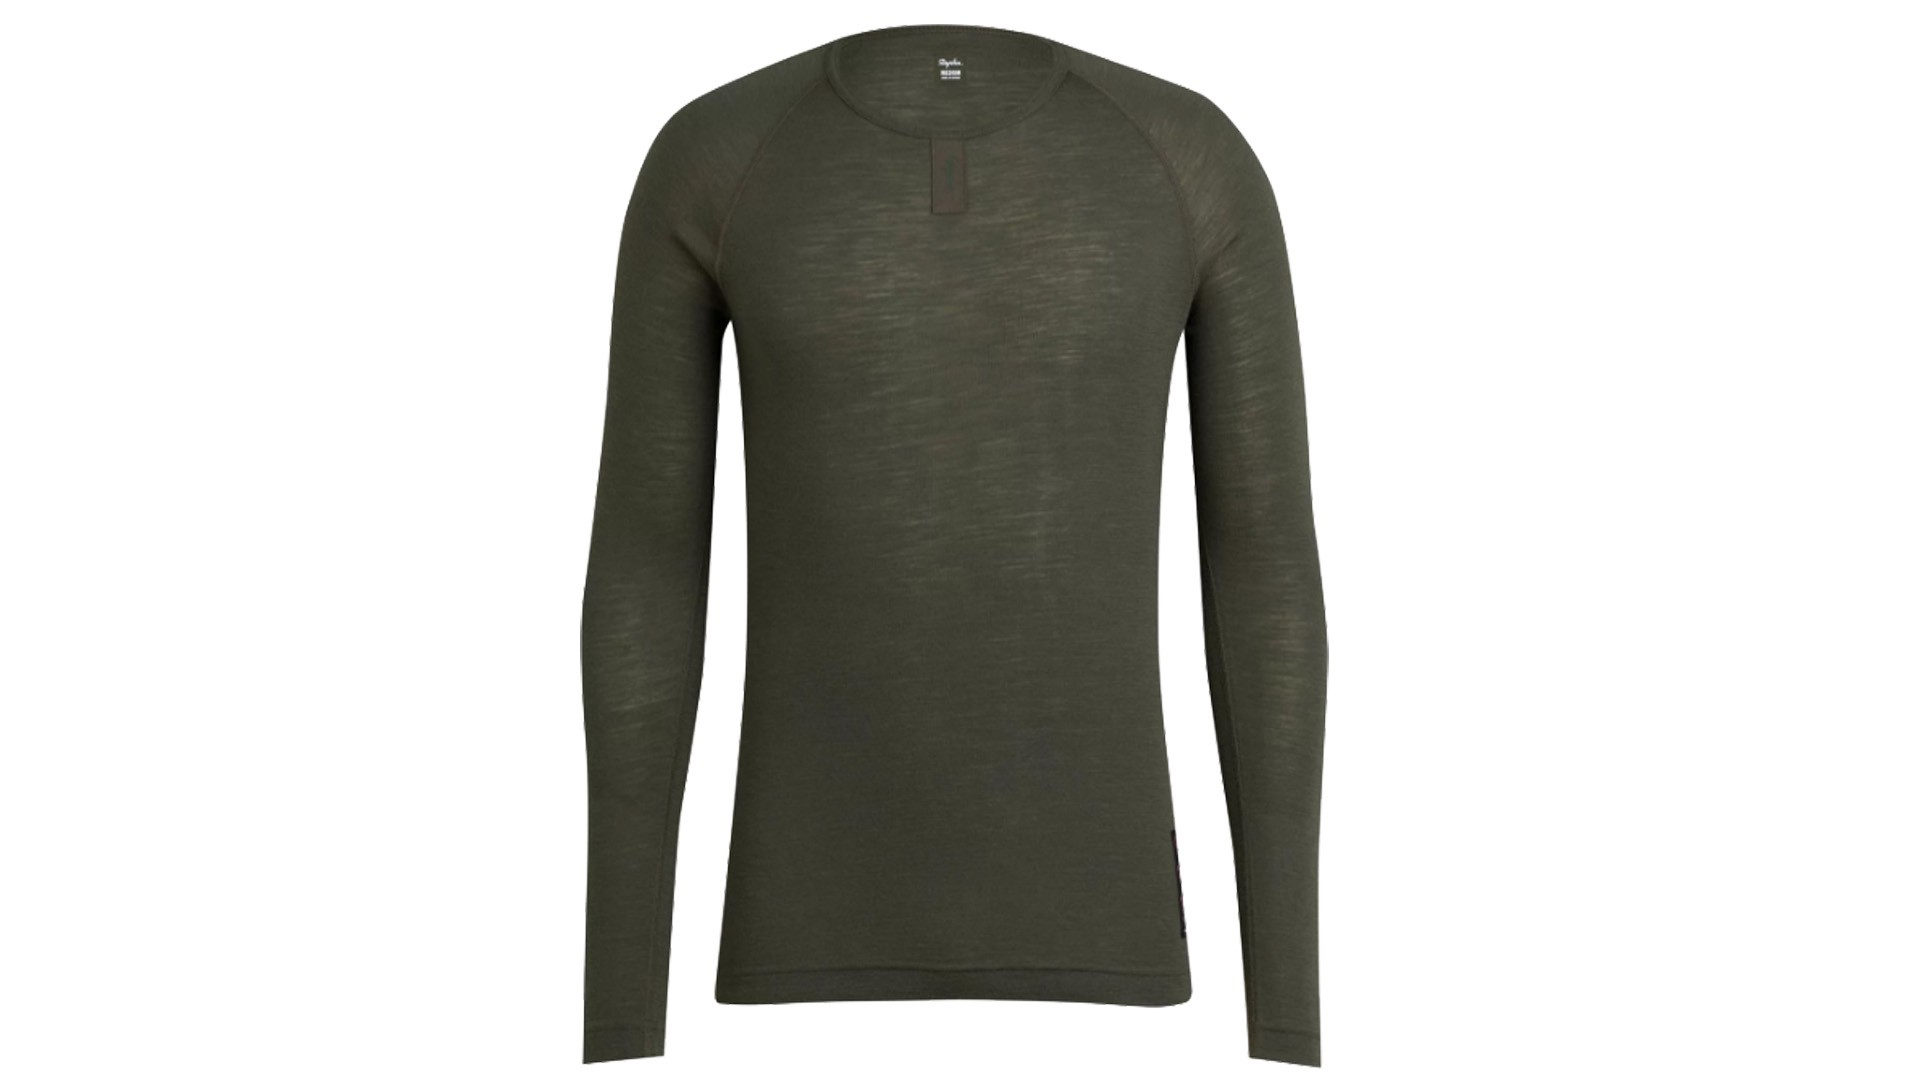 Stay snug with a merino base layer